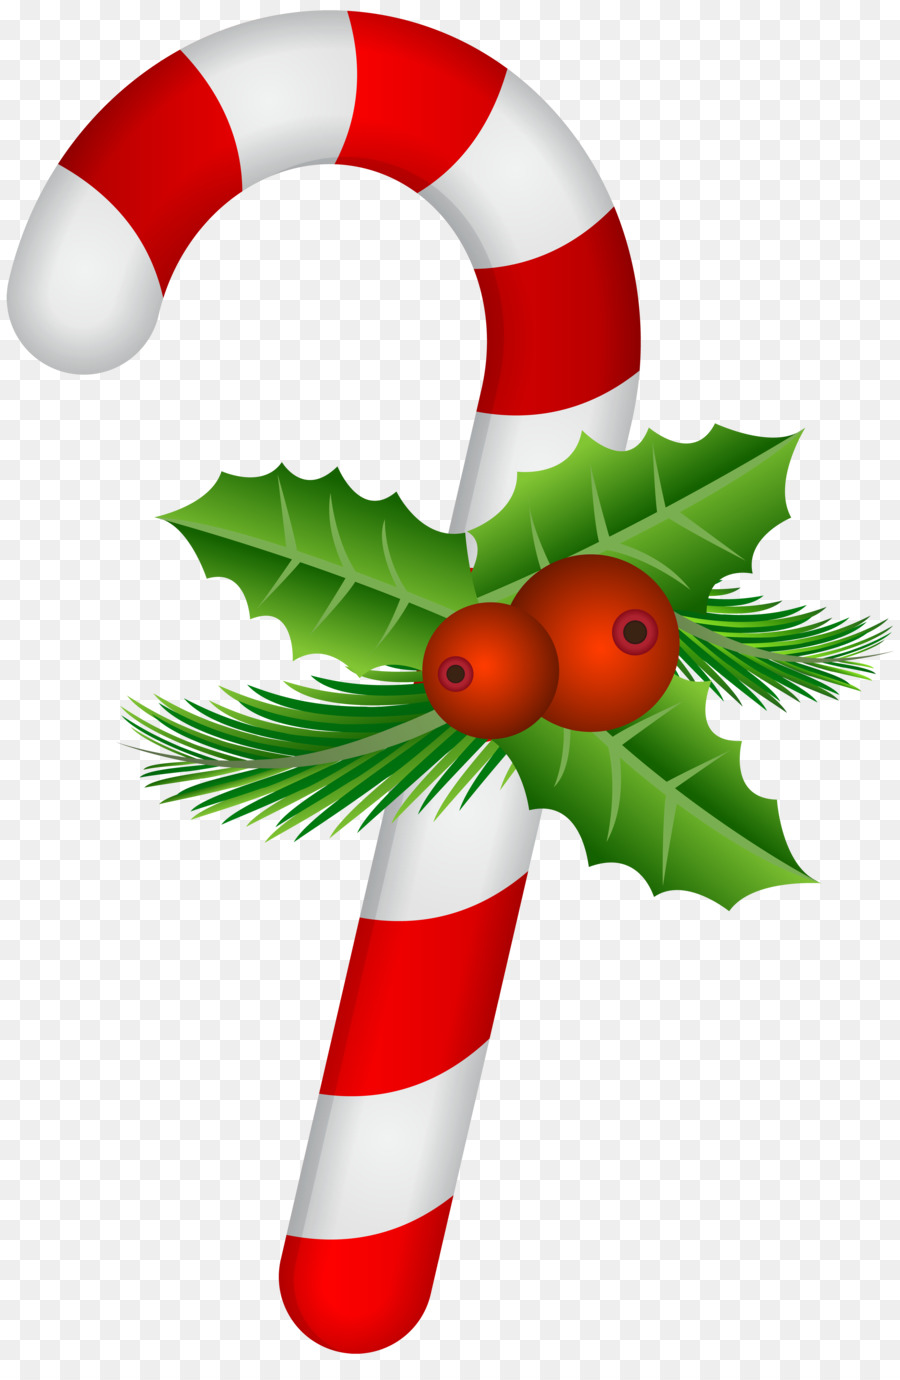 Christmas Candy Cane clipart.